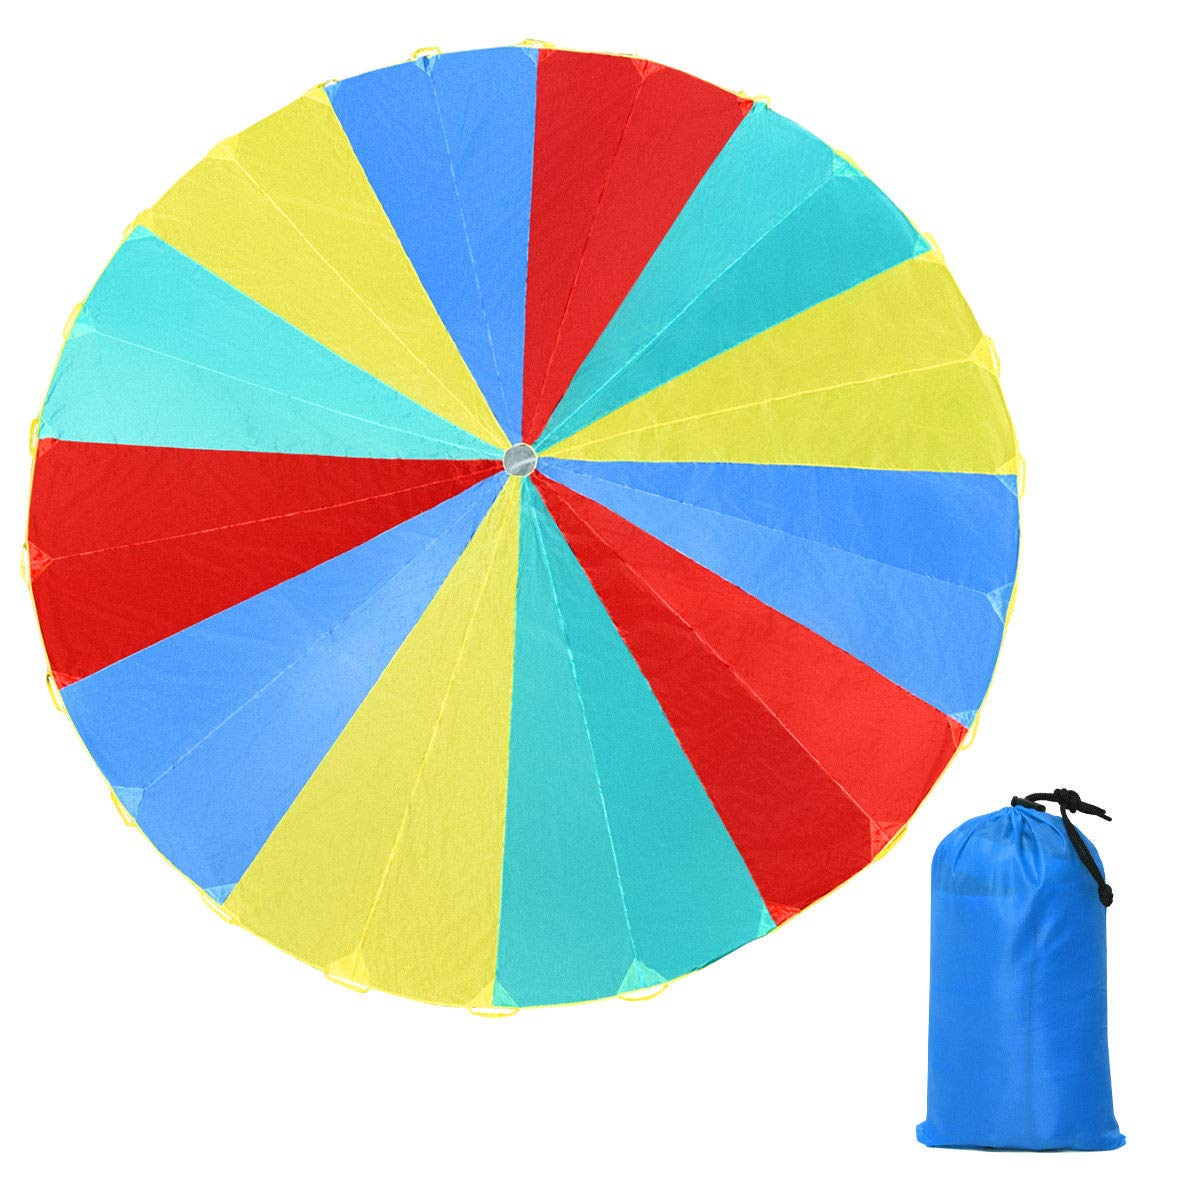 Globe House Products GHP 20Ft Red/Yellow/Blue/Green 190T Polyester Fabric 24-Handle Foldable Parachute w Bag